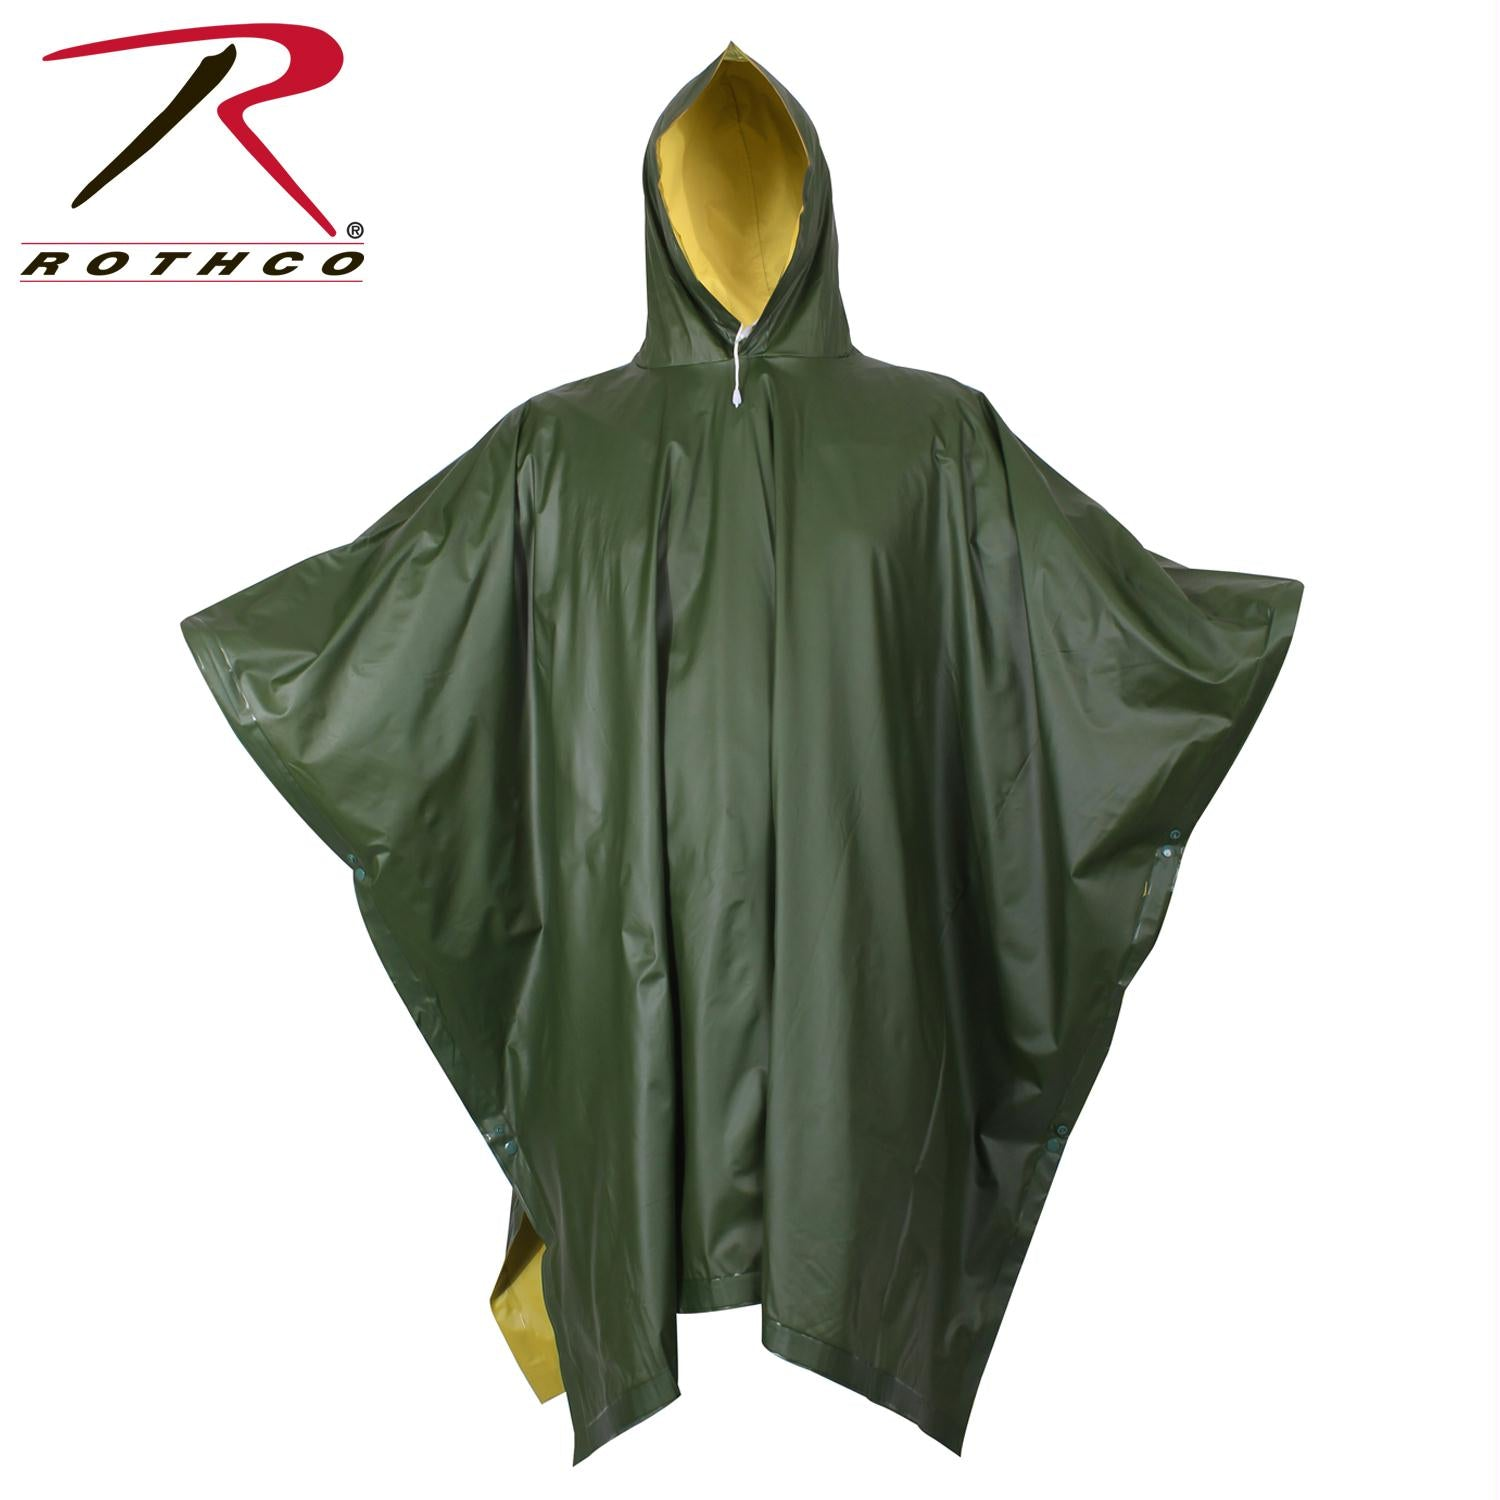 Rothco Reversible Rubberized Poncho